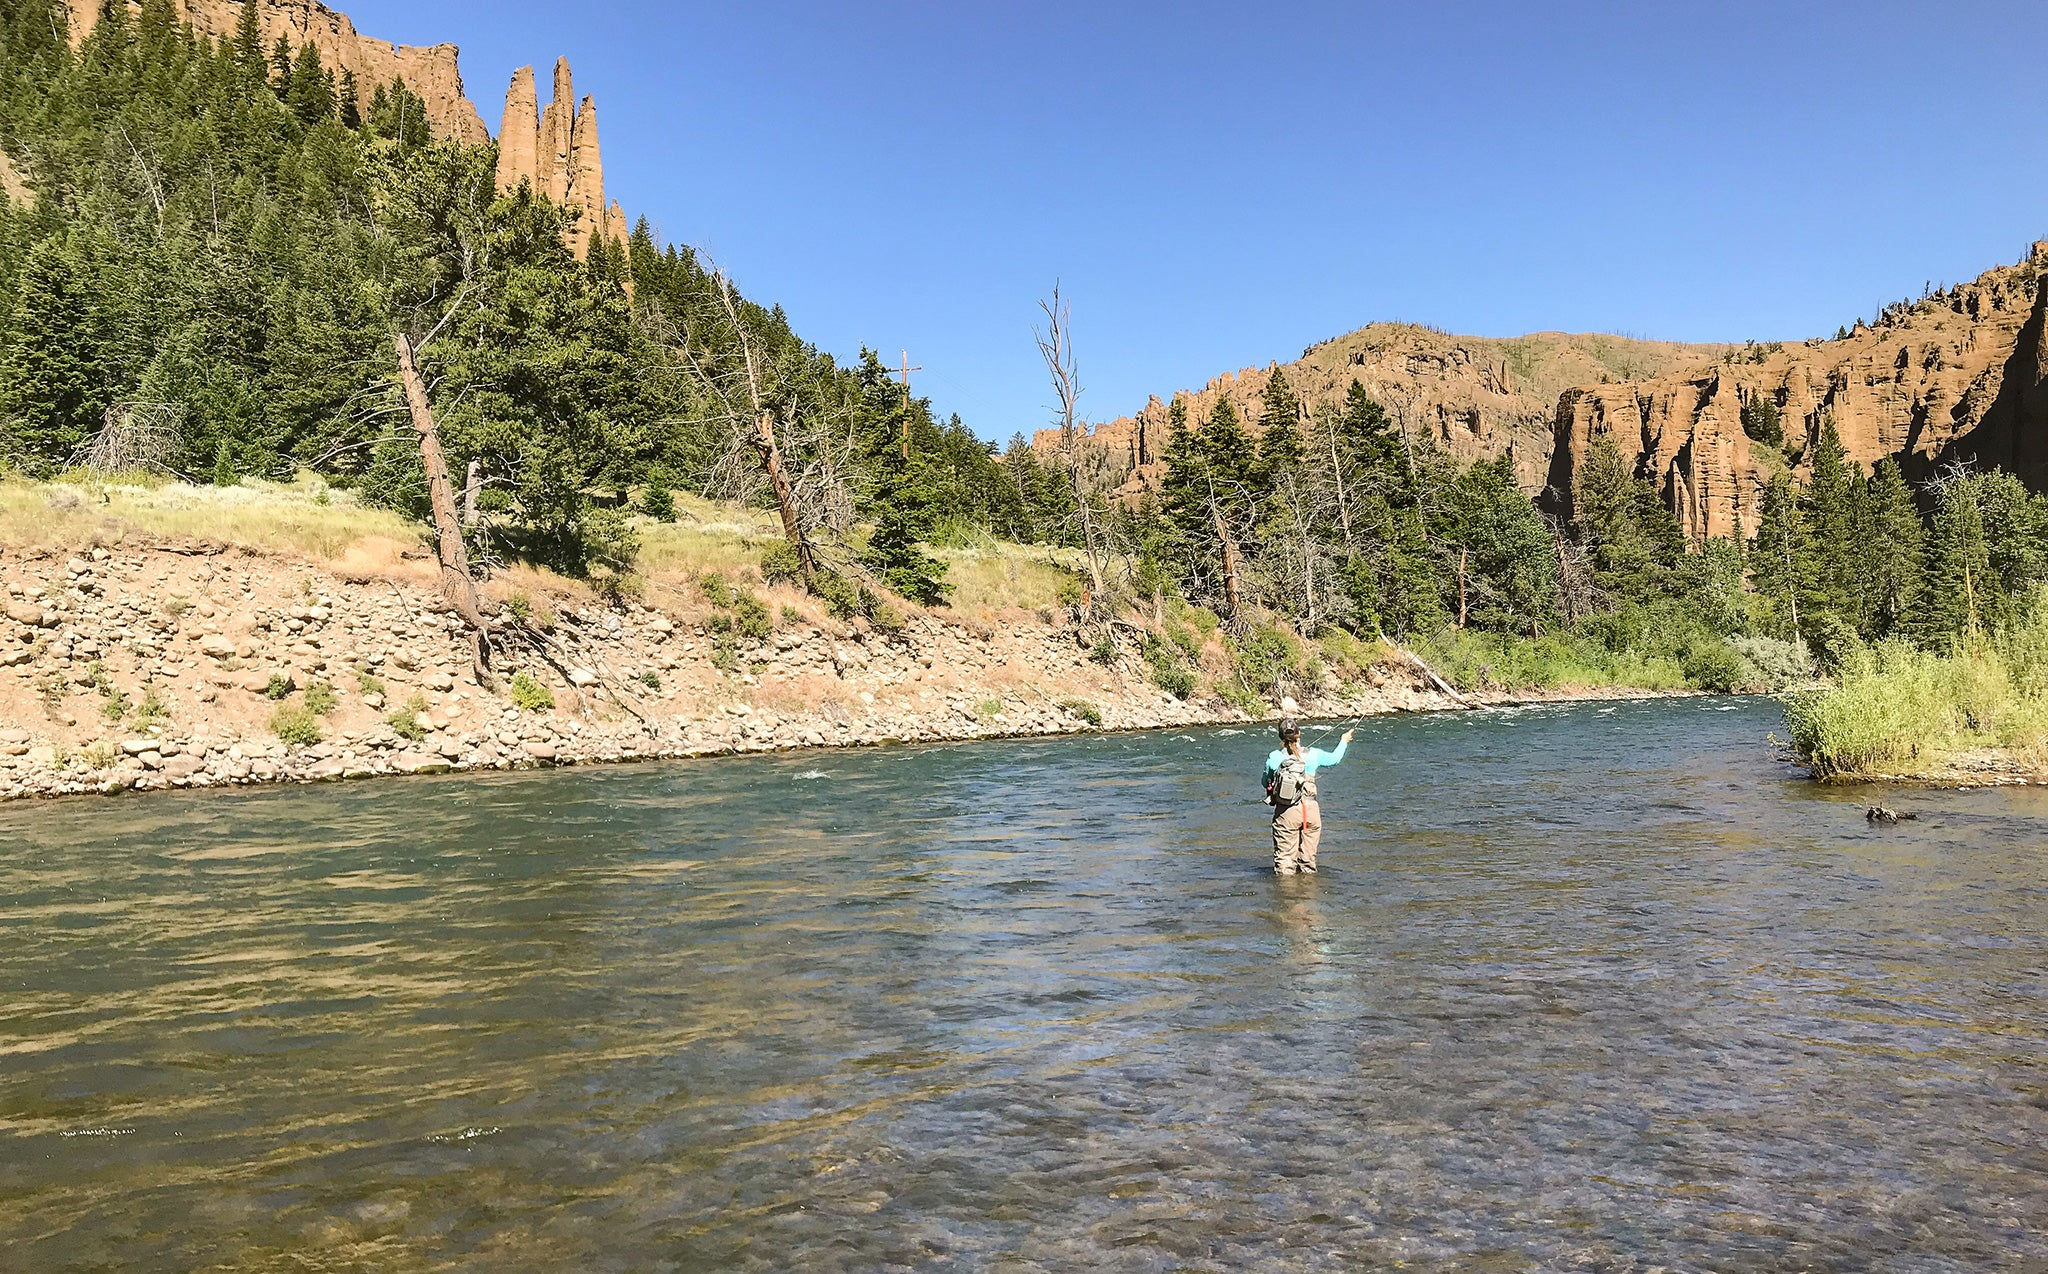 fly fishing in wyoming, Yellowstone national park, Cody wyoming